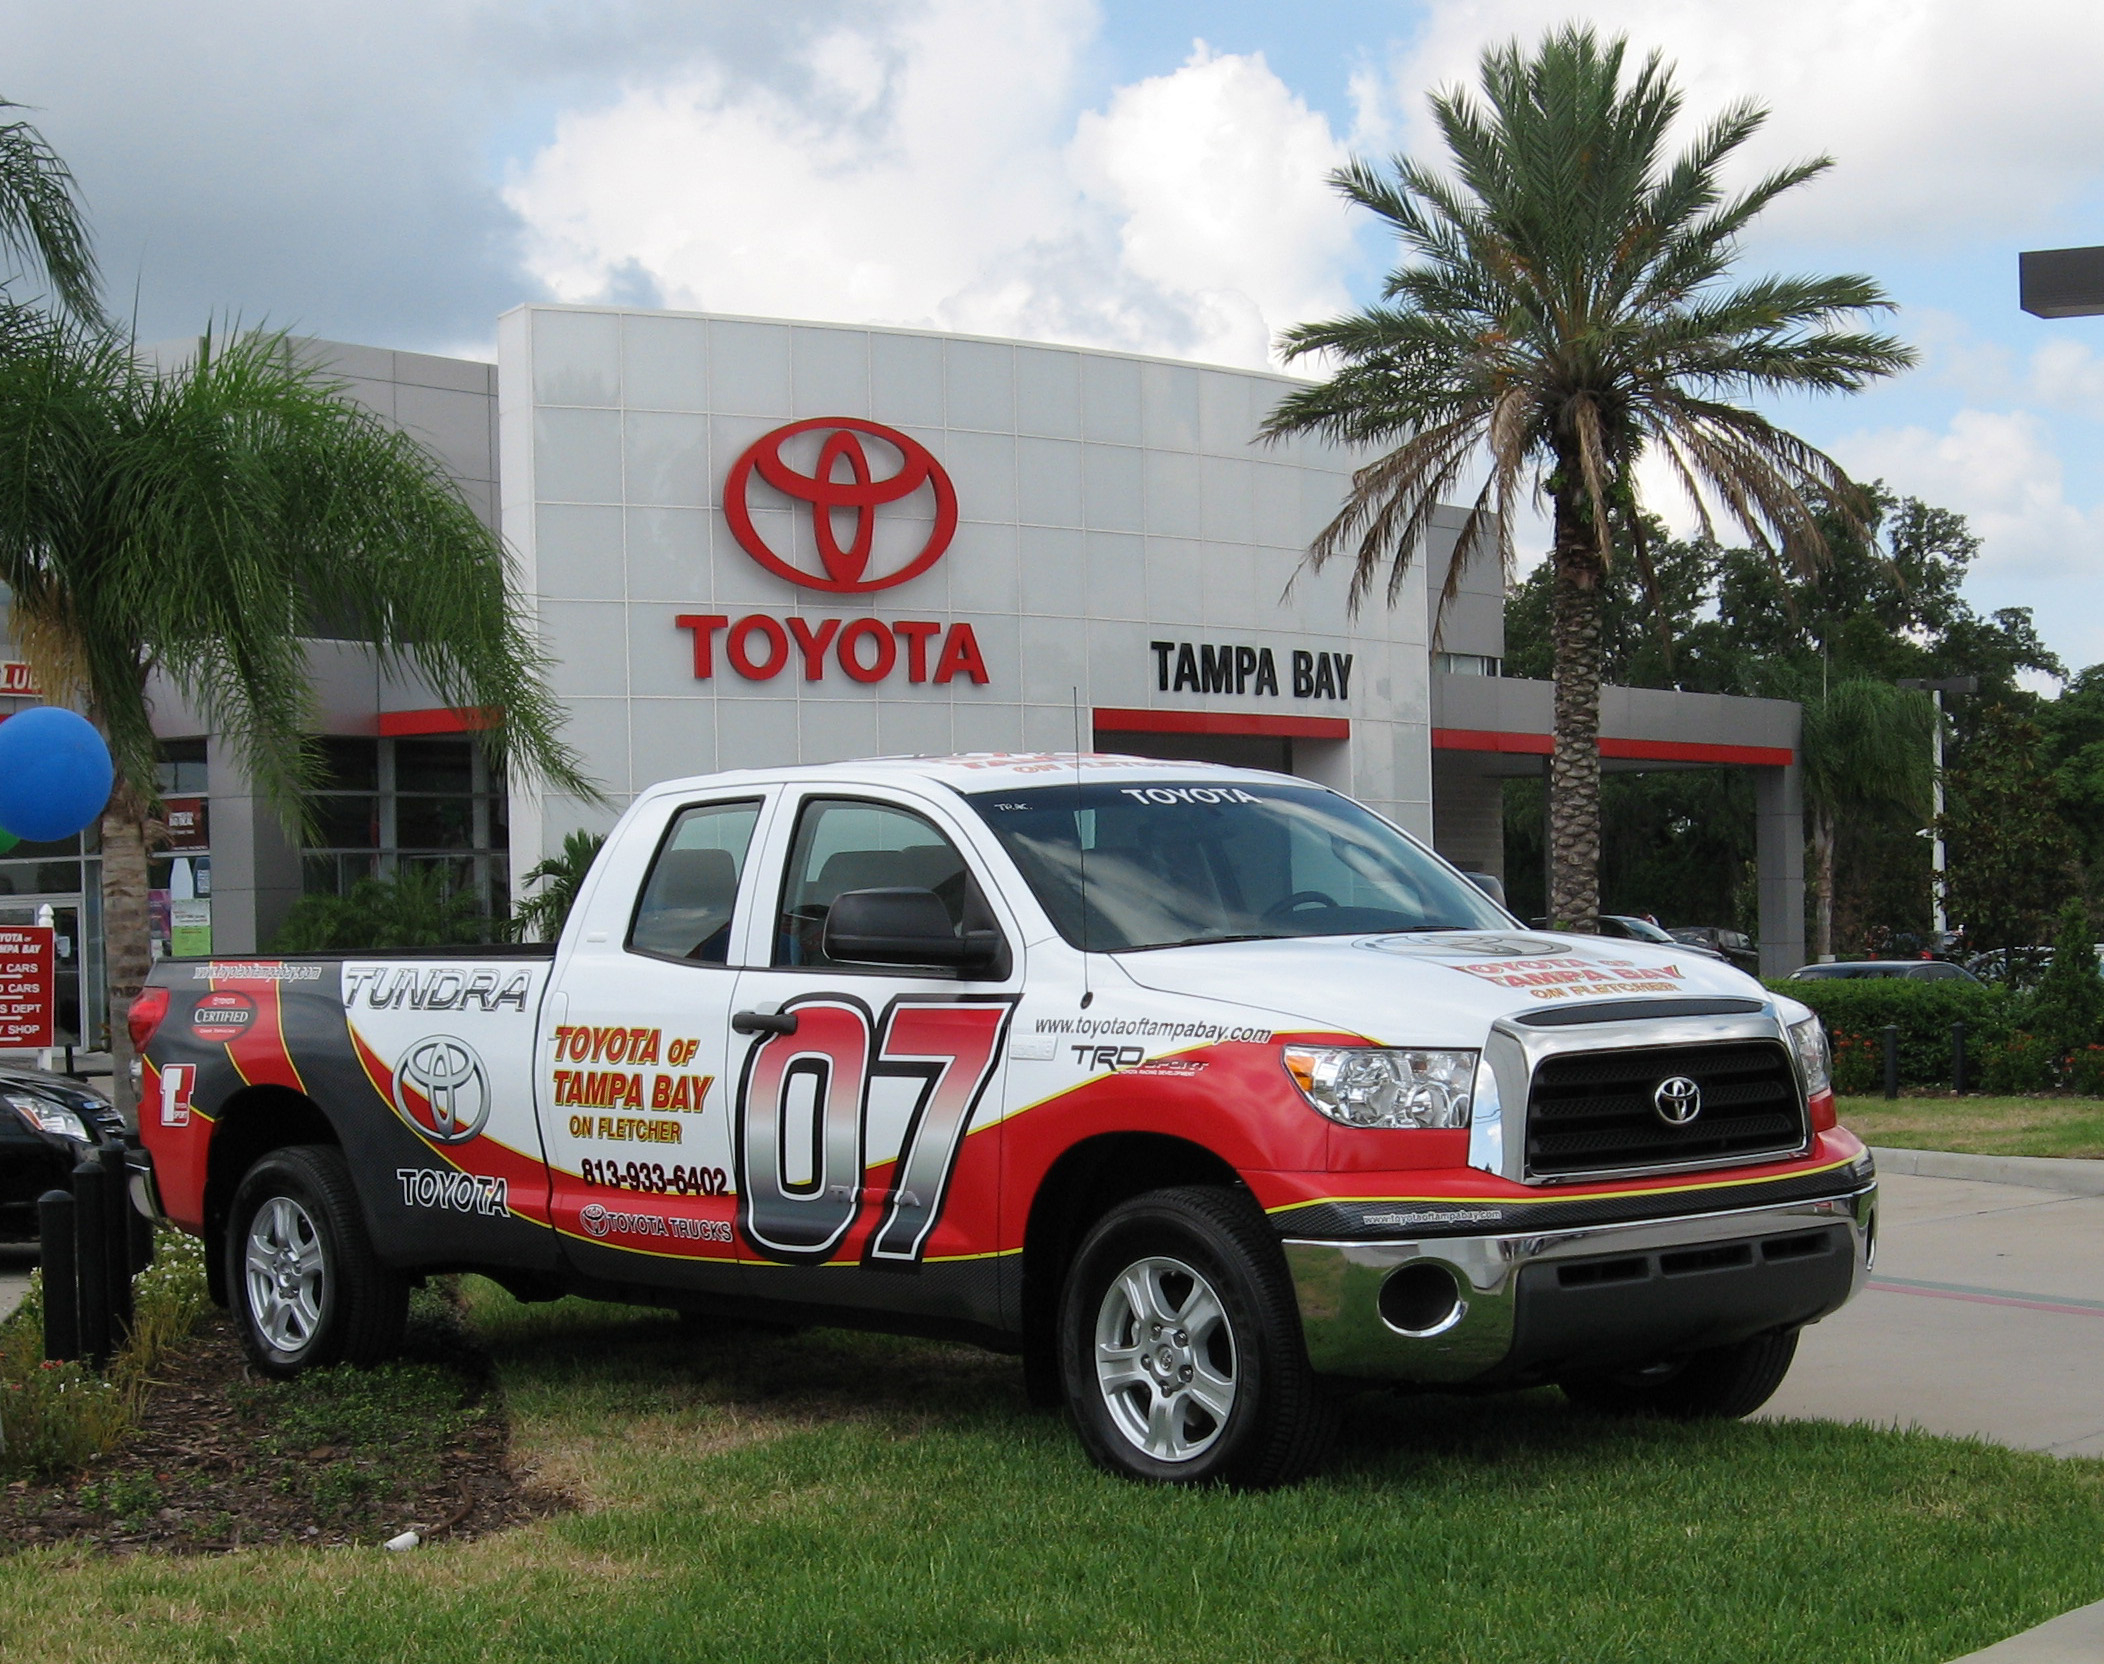 Toyota Of Tampa Bay At 1101 E Fletcher Ave Tampa Fl On Fave